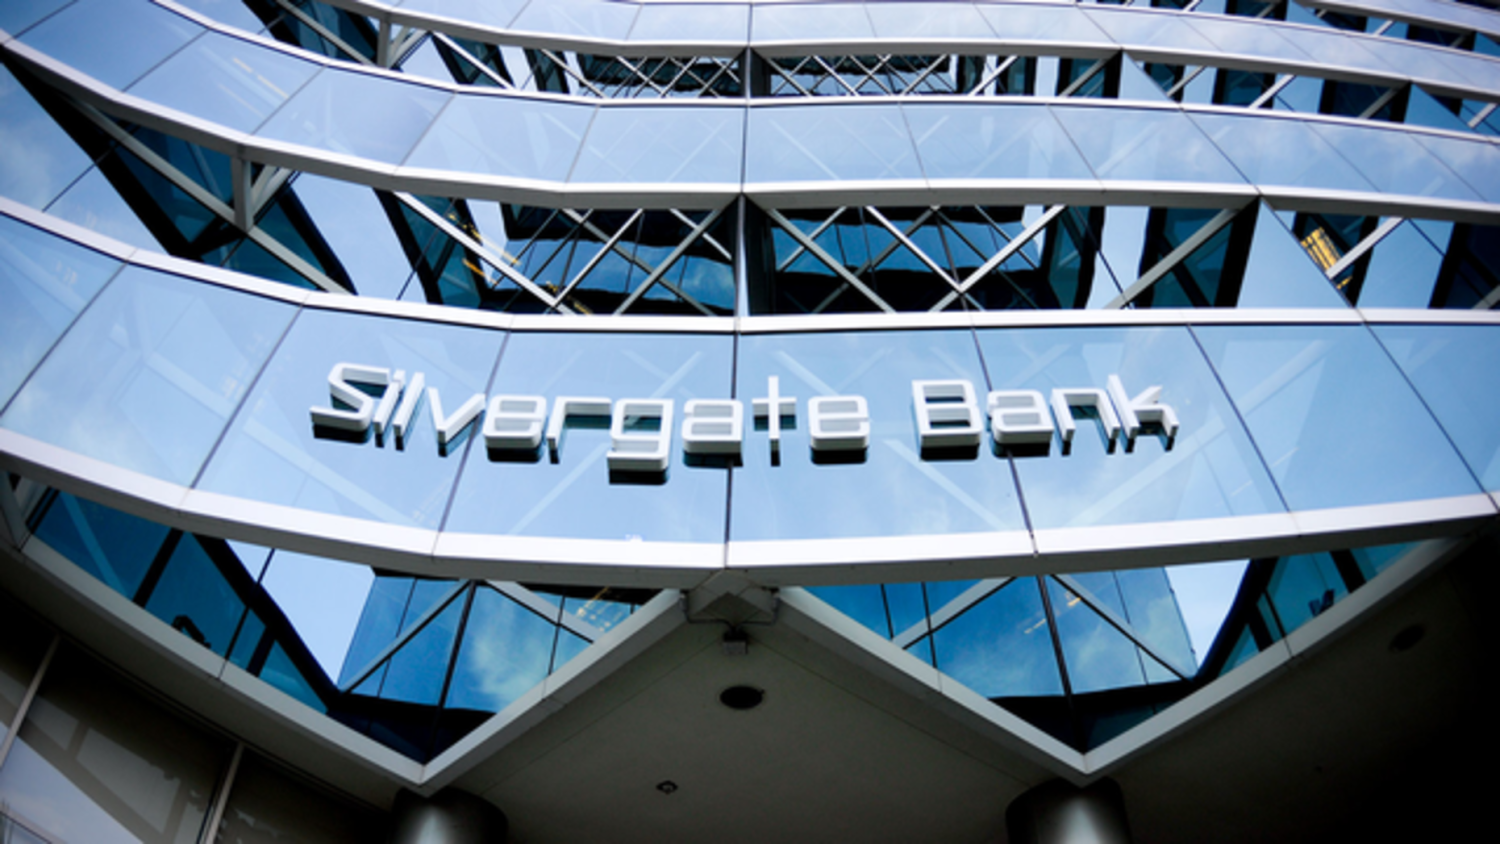 Silvergate Bank Adds 59 Crypto Clients, But Deposits Down $123 Million in Q4